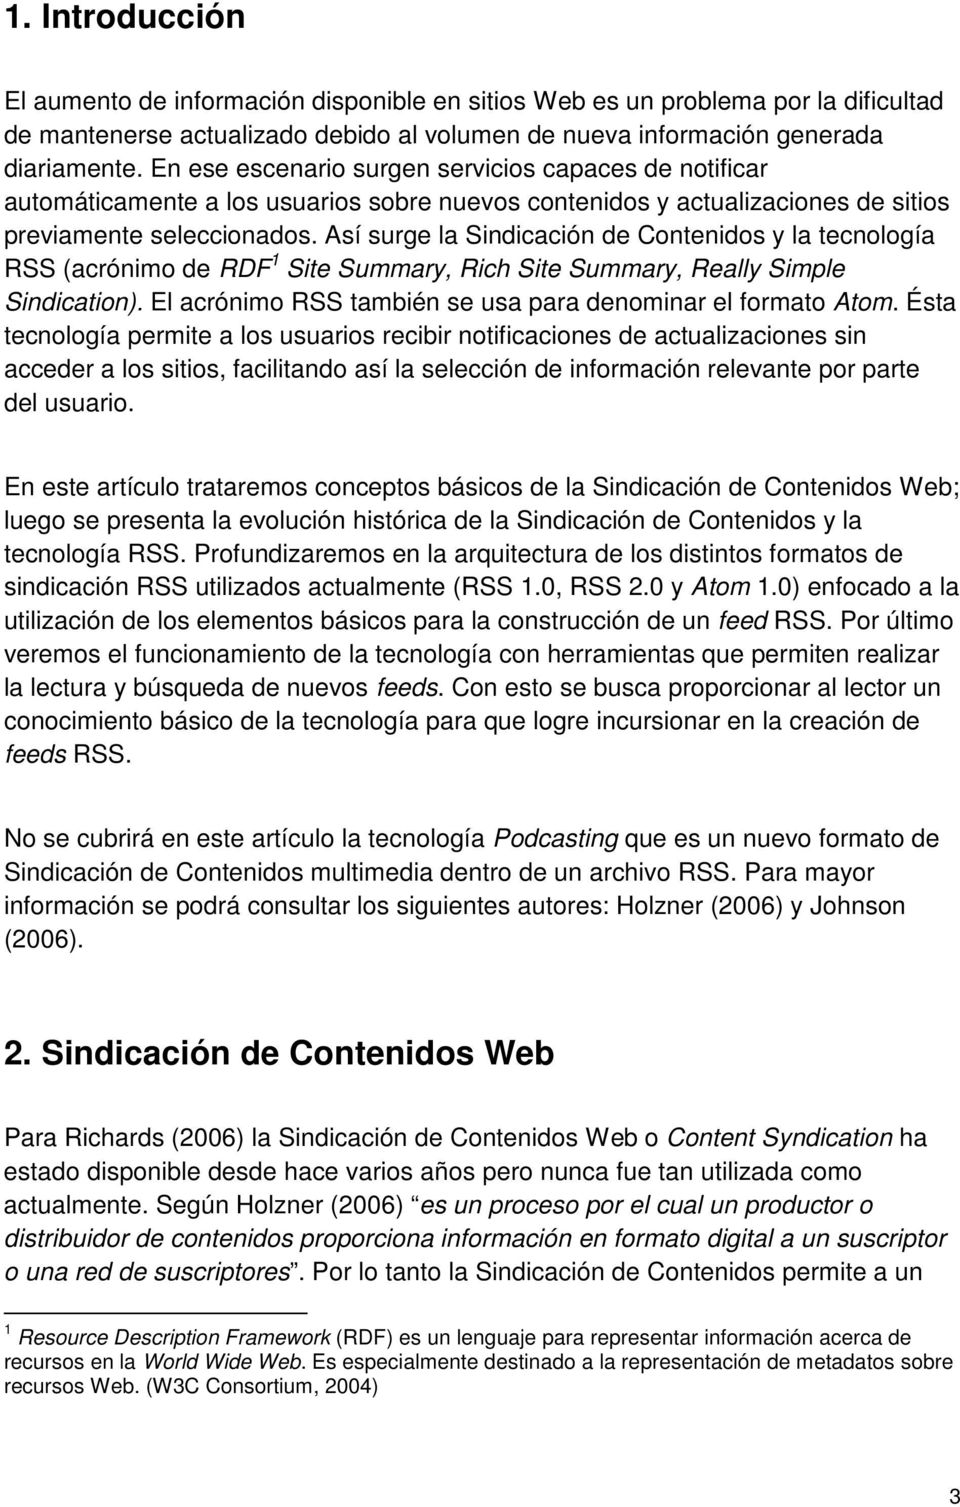 Así surge la Sindicación de Contenidos y la tecnología RSS (acrónimo de RDF 1 Site Summary, Rich Site Summary, Really Simple Sindication).